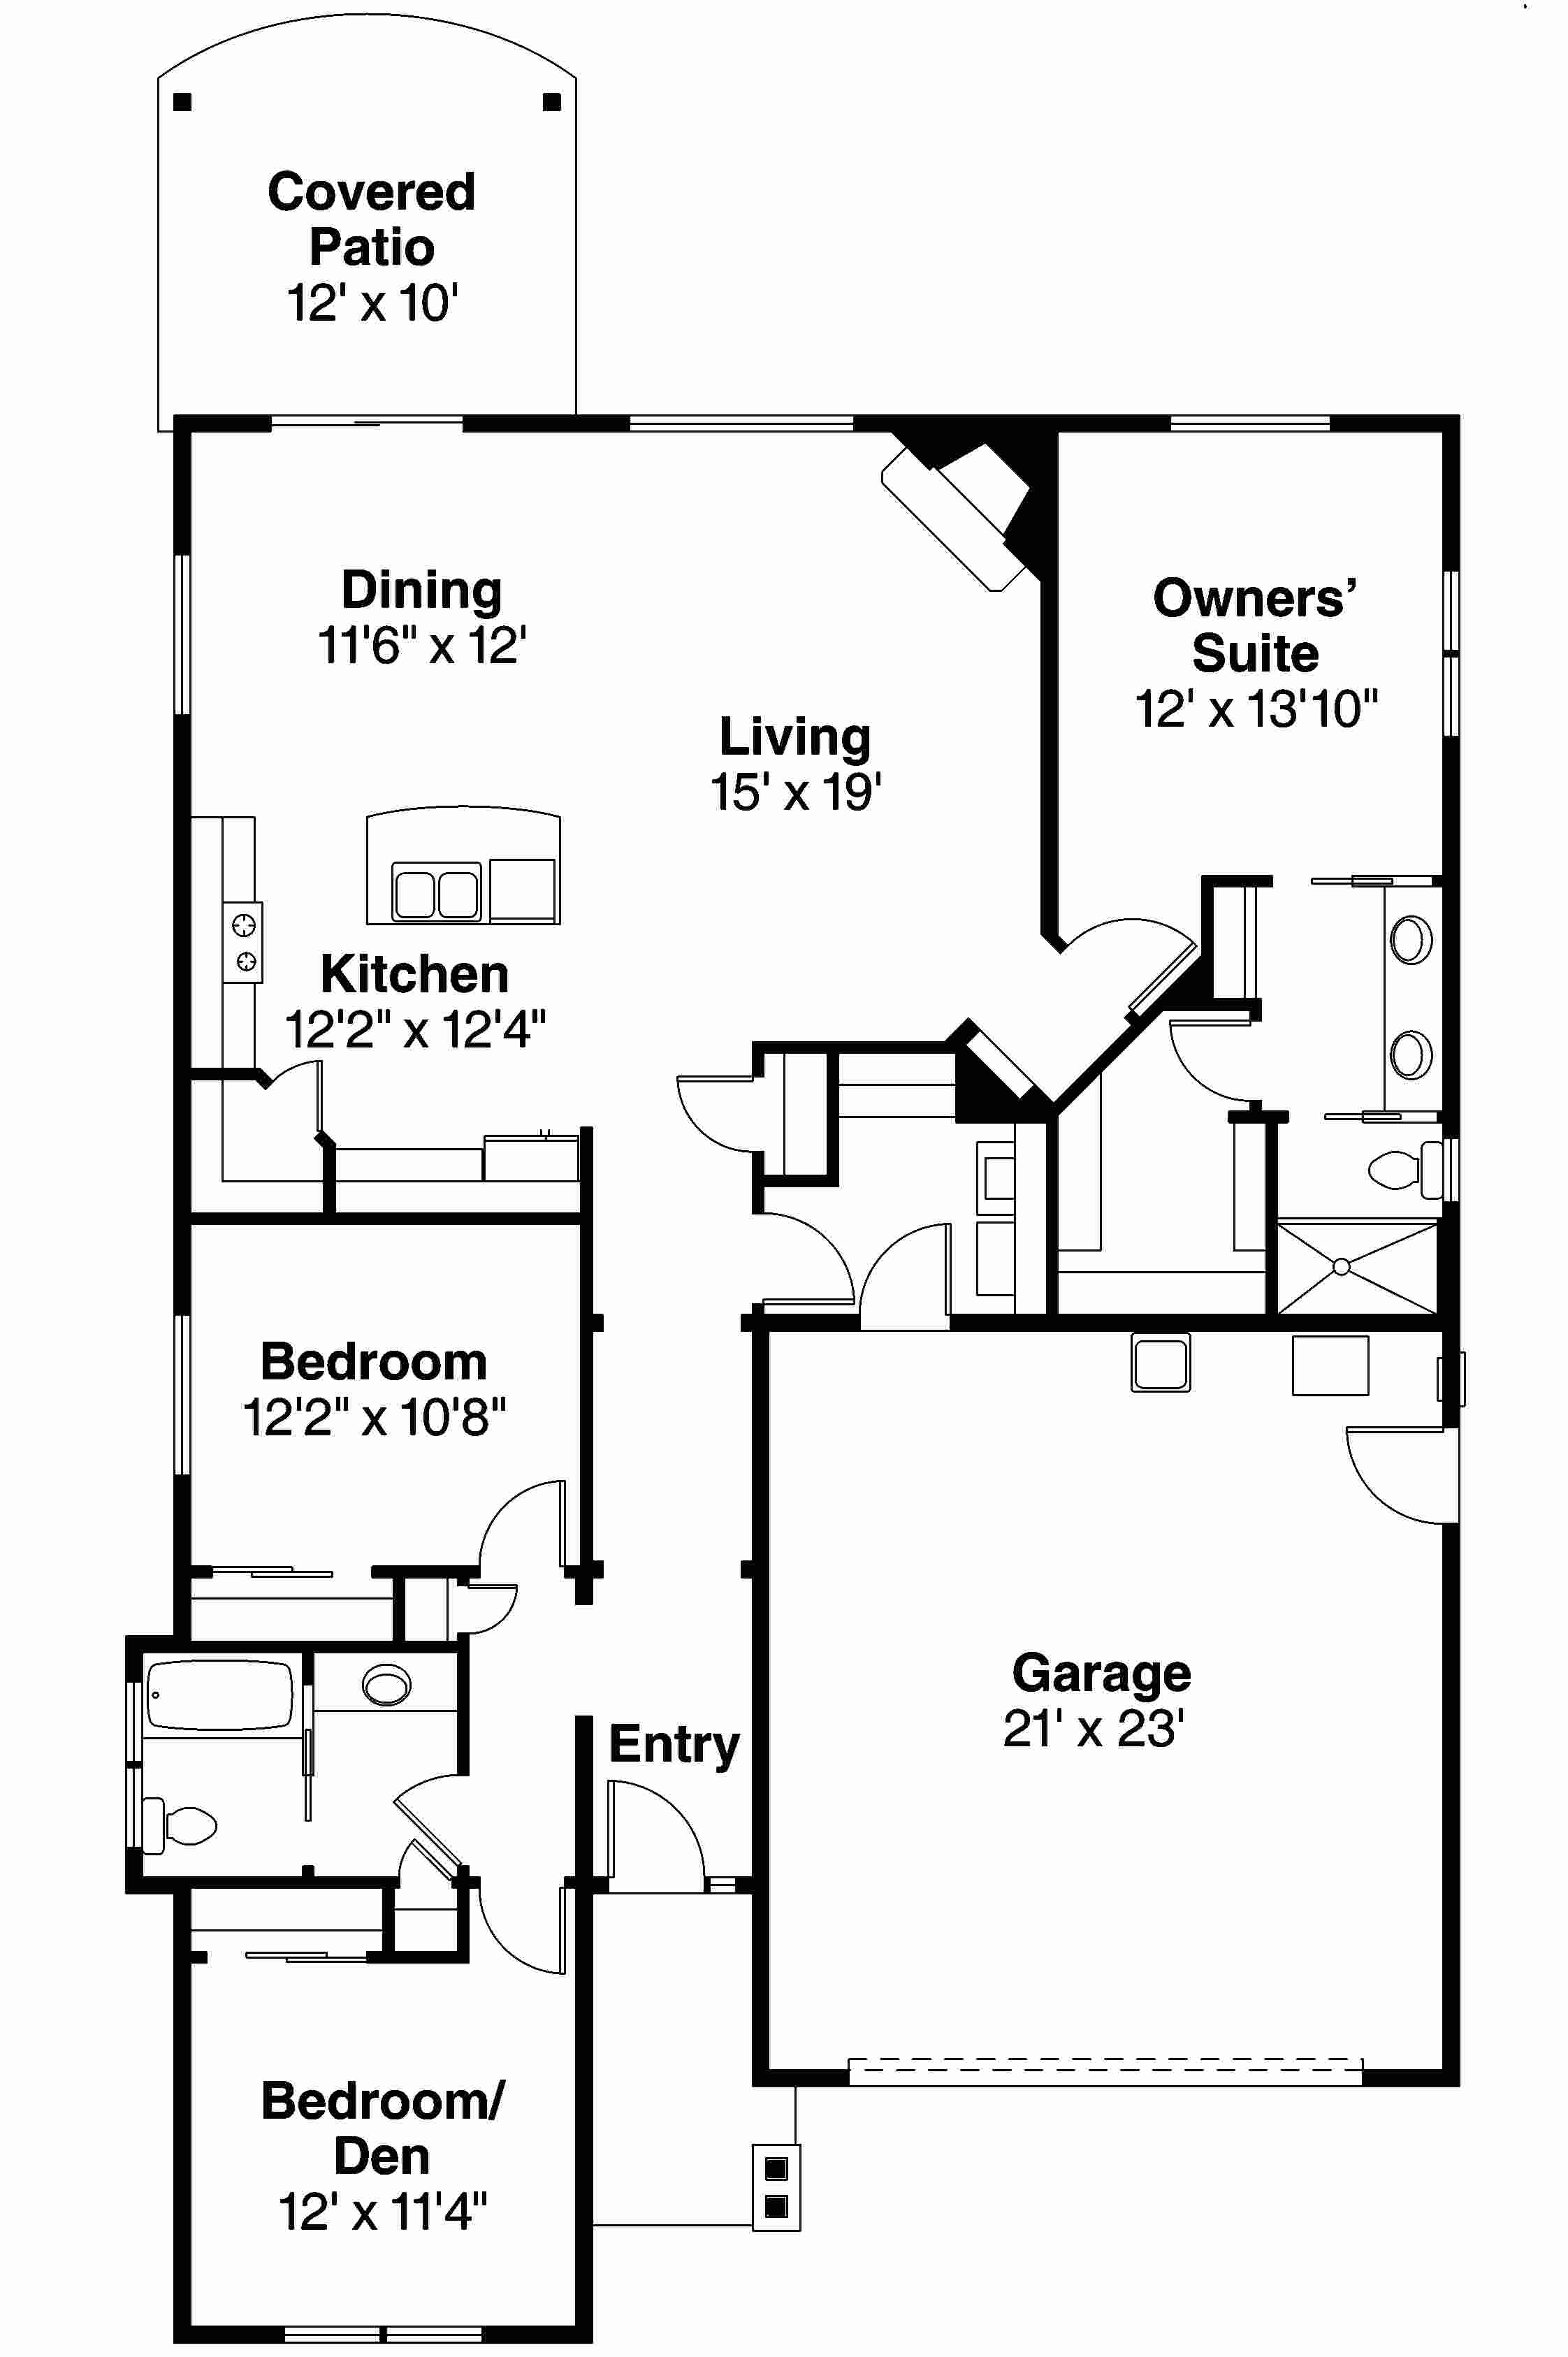 30879 furthermore Rt 4163 Chassis Setup together with 1825 Square Feet 3 Bedrooms 2 5 Bathroom Cottage House Plans 2 Garage 34924 in addition 3 Tips To Prevent Water Intrusion In Your Home additionally CCITC2009PreConstructionReport. on asphalt specs